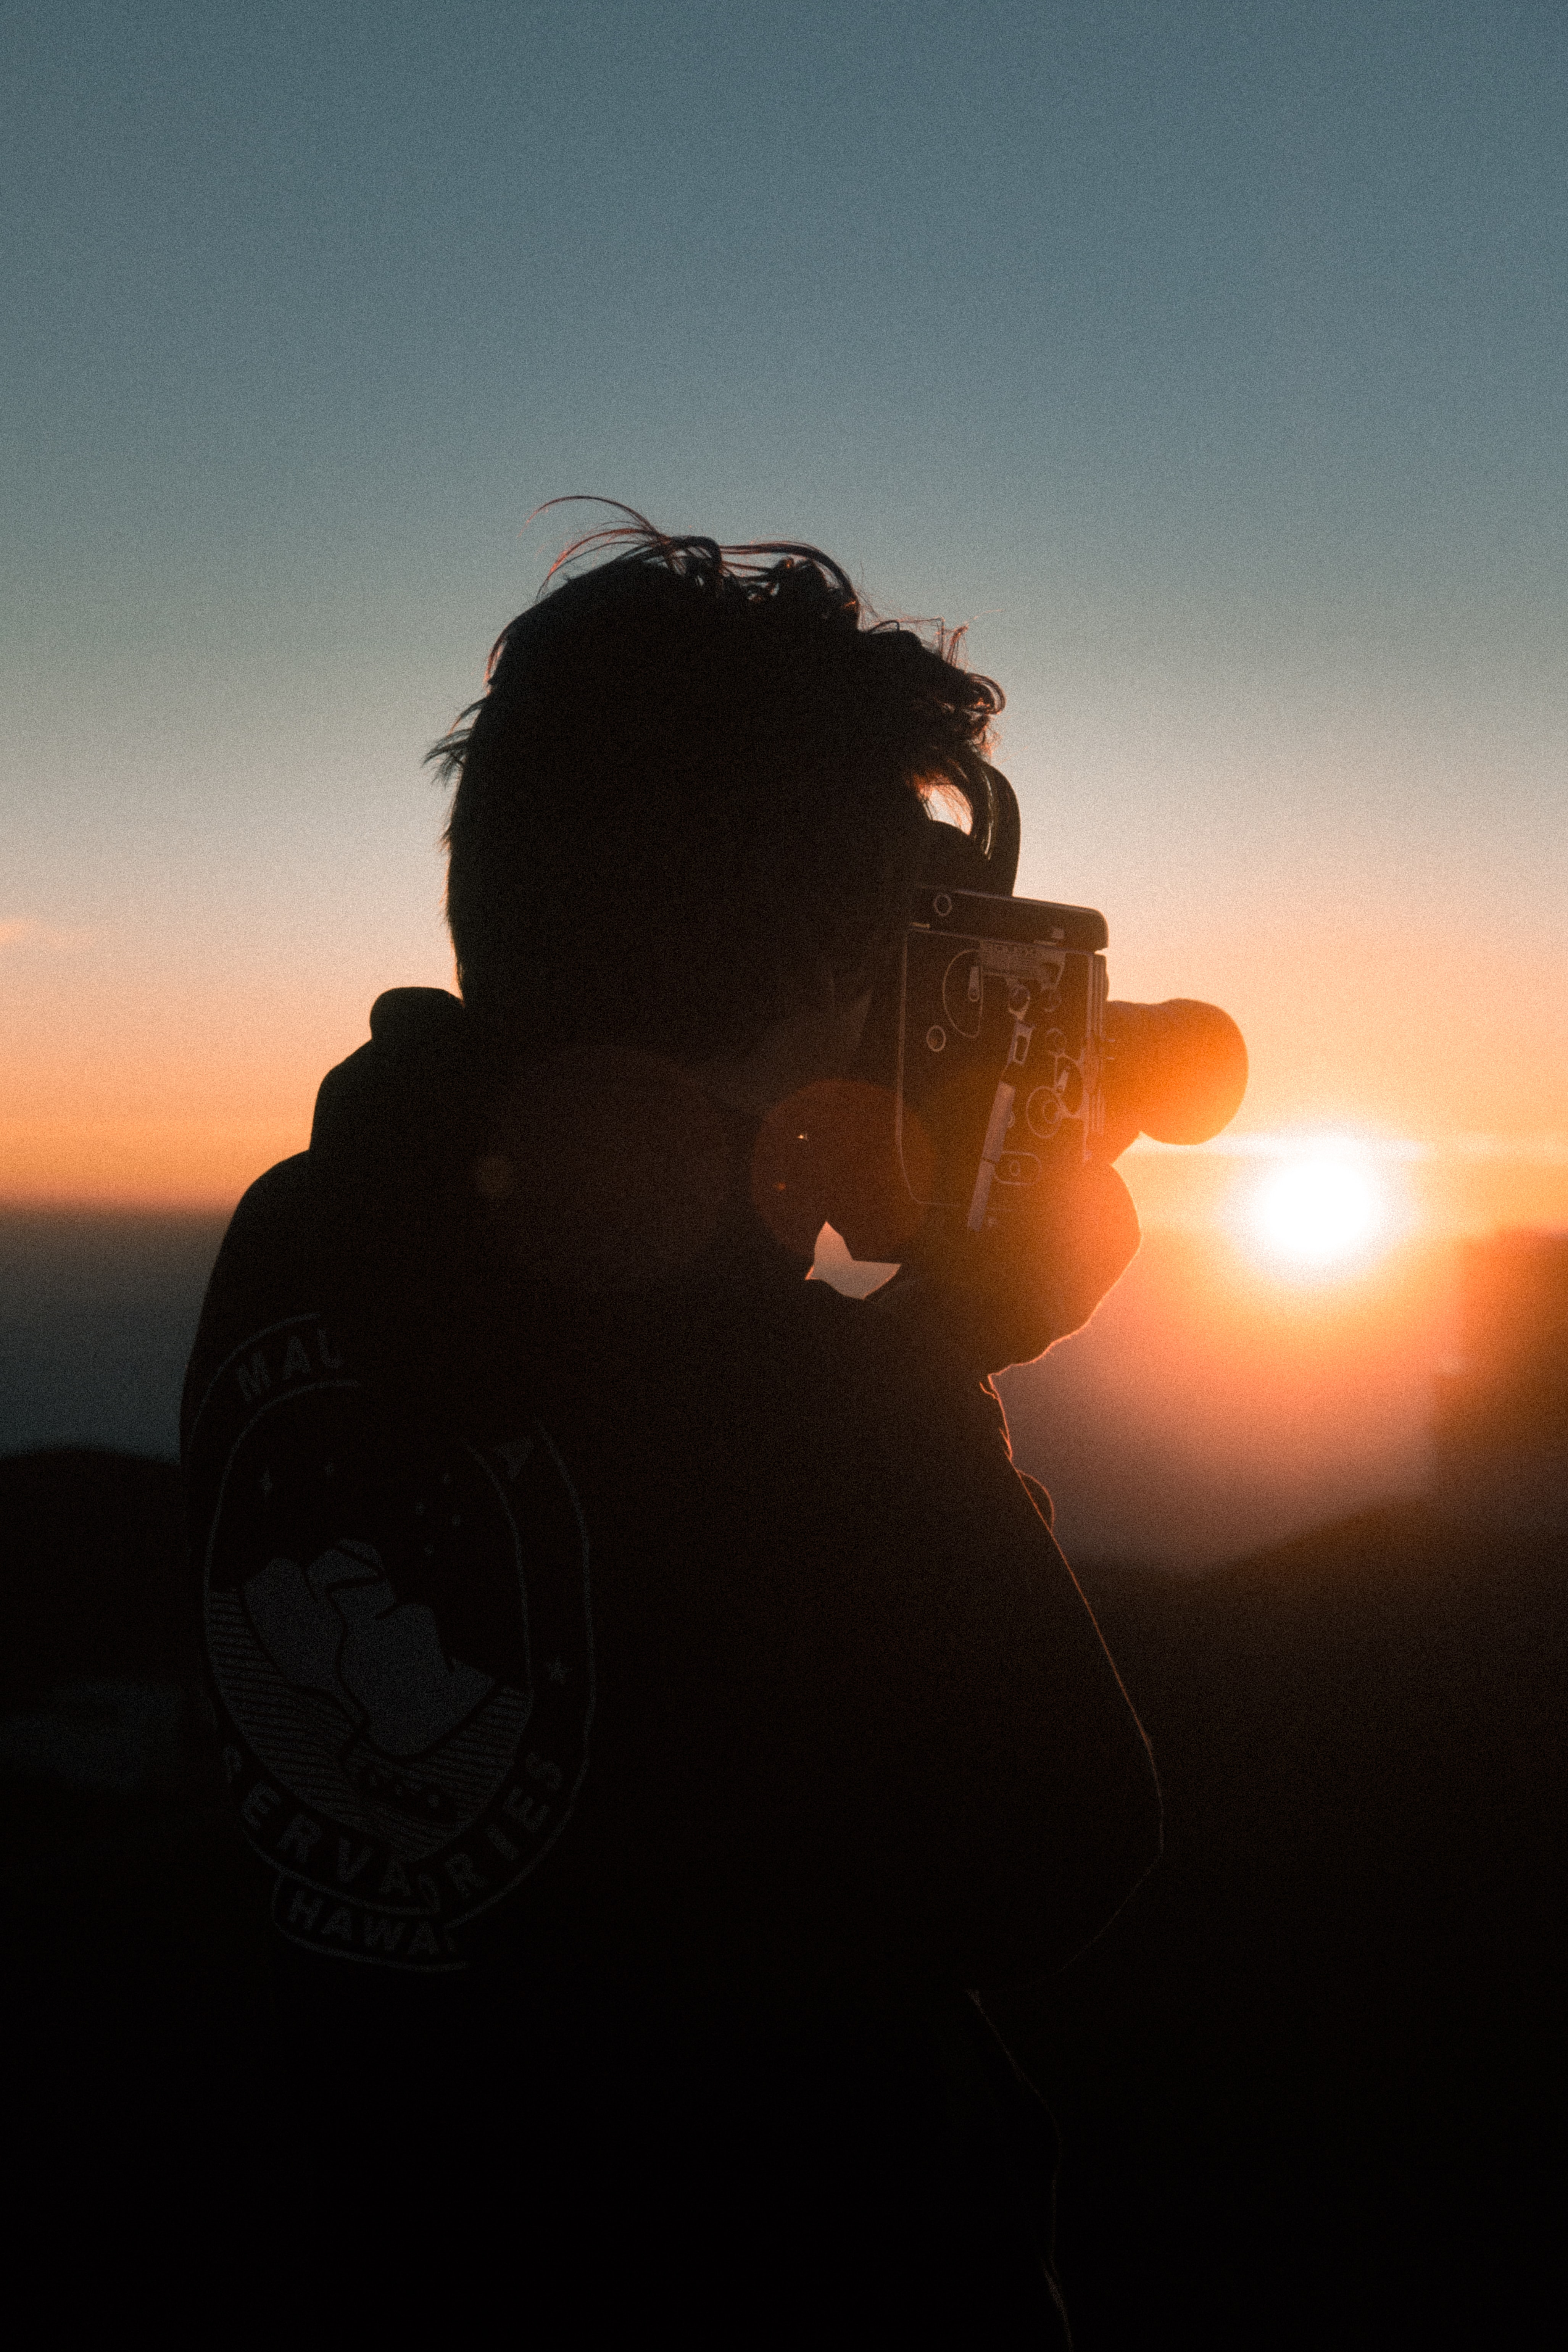 man holding classic camera during golden hour